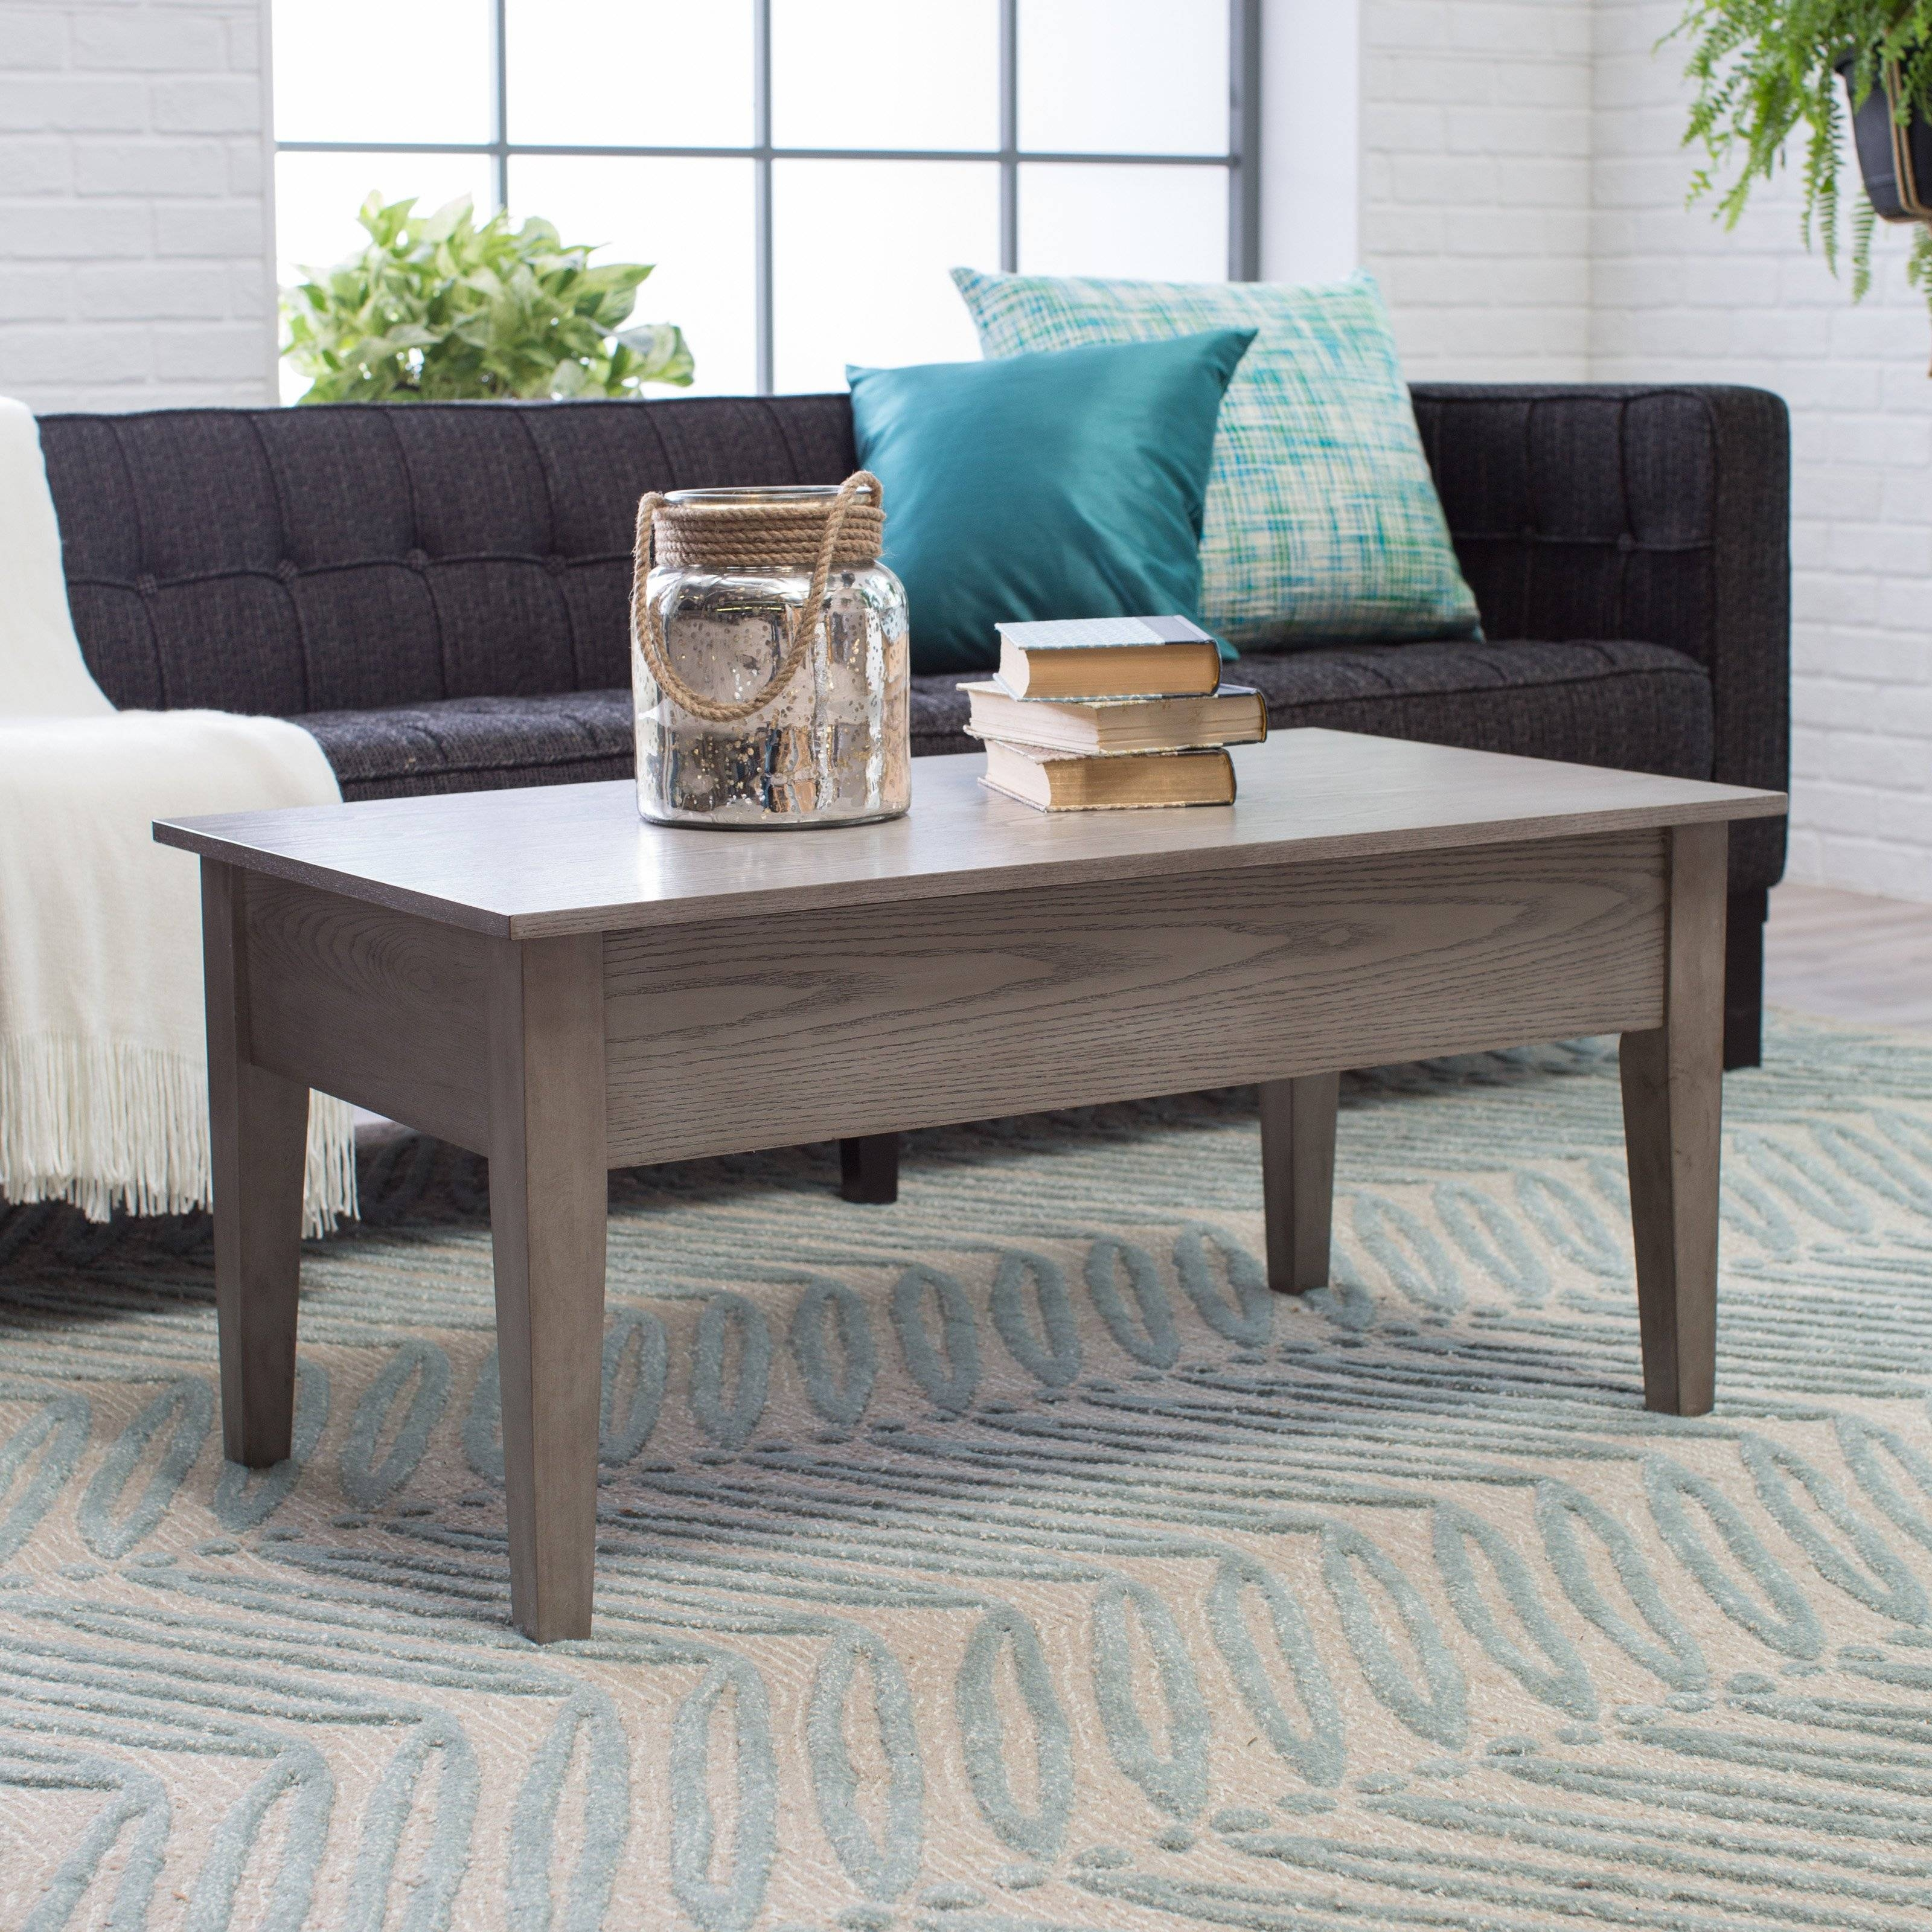 Turner Lift Top Coffee Table - Gray | Hayneedle within Grey Wood Coffee Tables (Image 30 of 30)